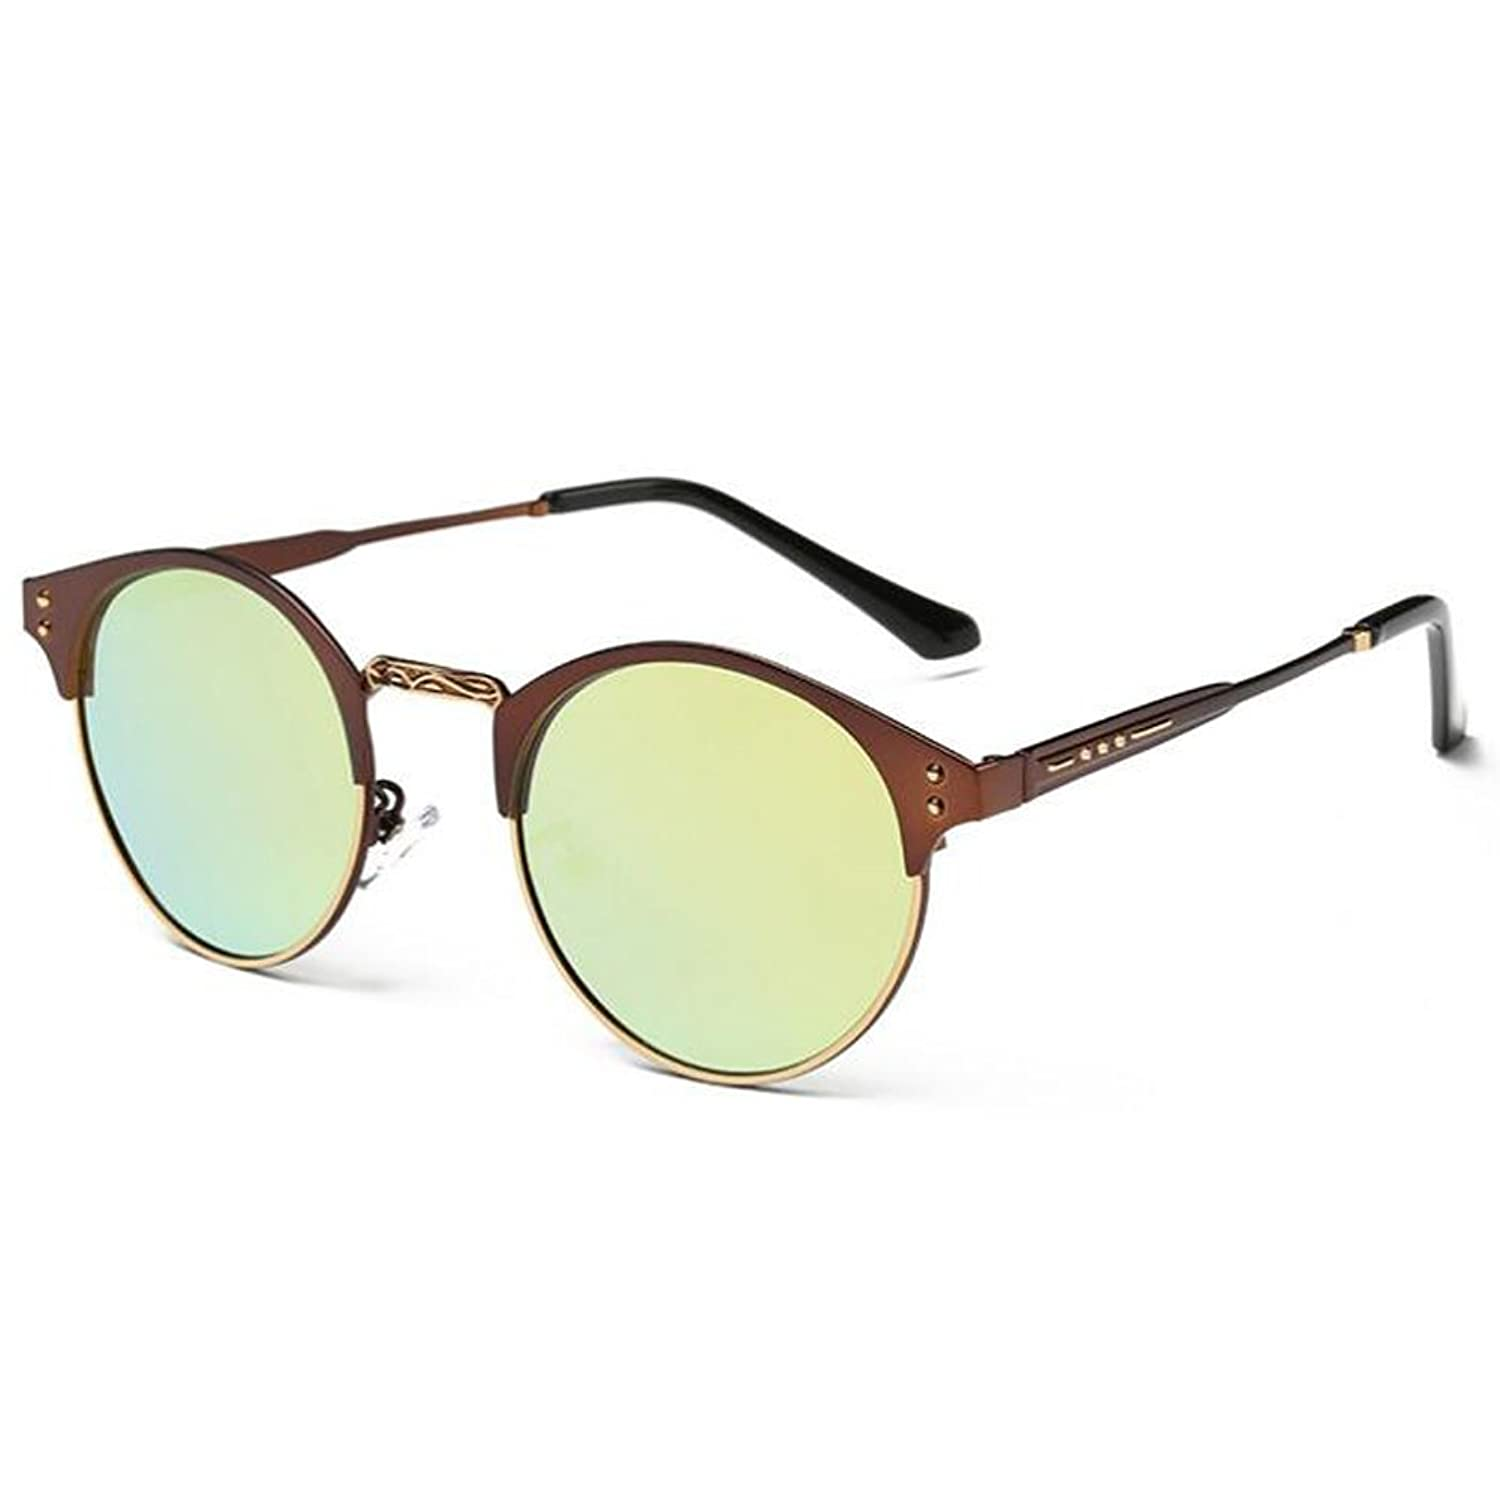 VVeda Polarized Retro Big Brand Frame New Fashion Sunglasses